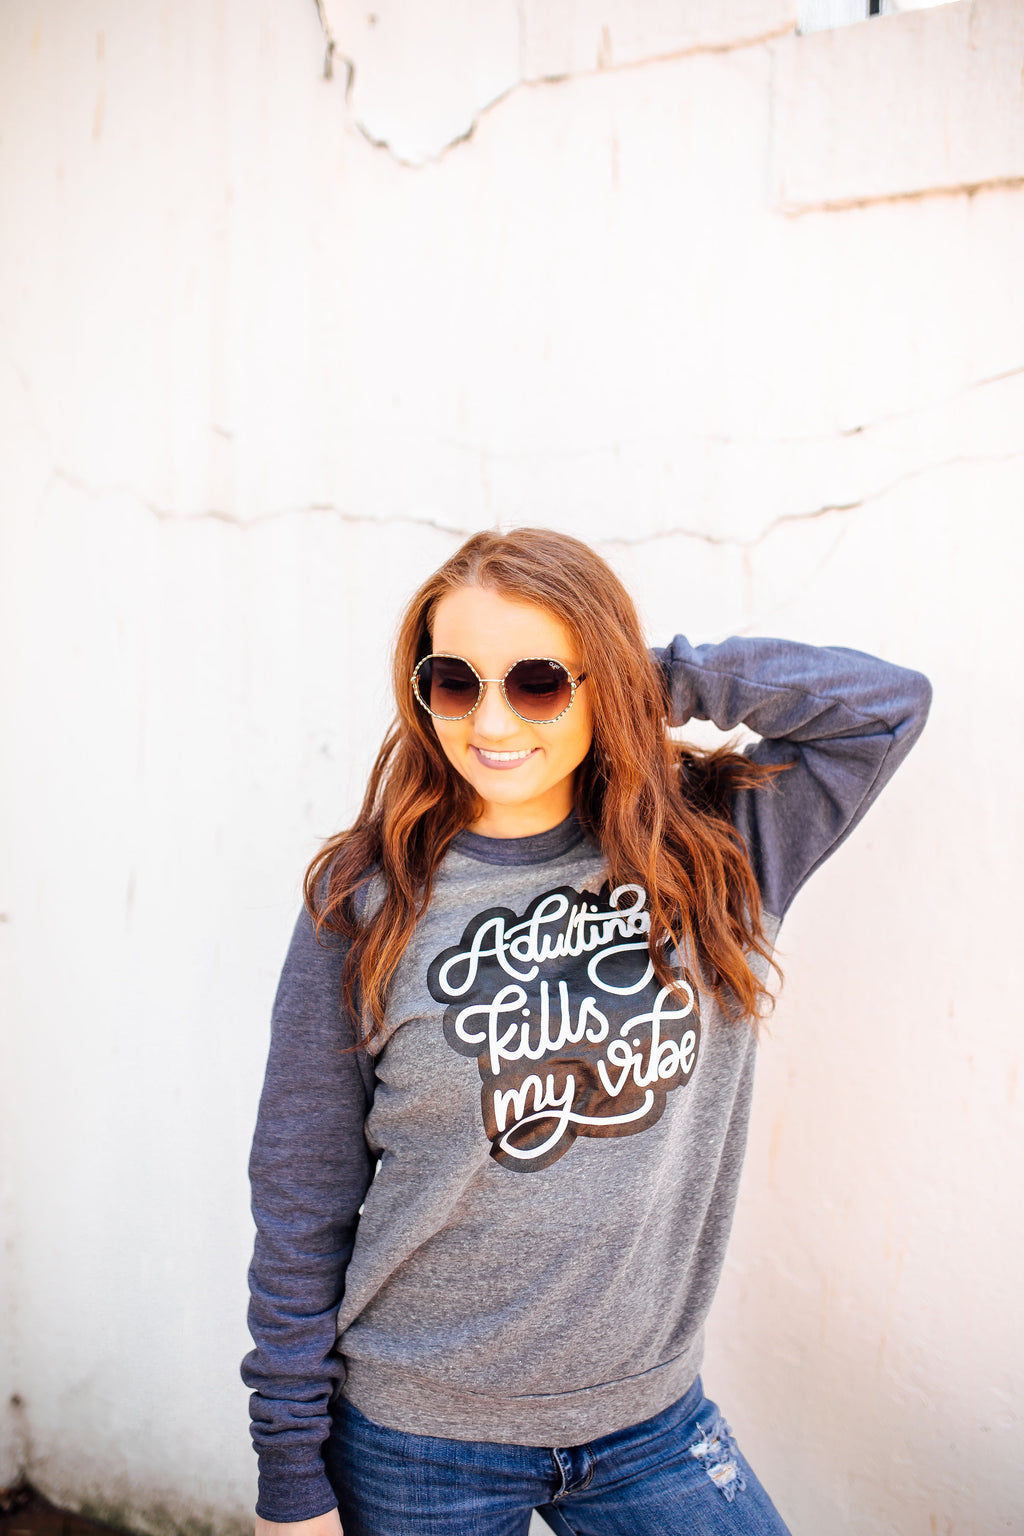 Adulting Kills My Vibe Unisex Crewneck Sweatshirt (Eco Grey/Navy + White/Black)